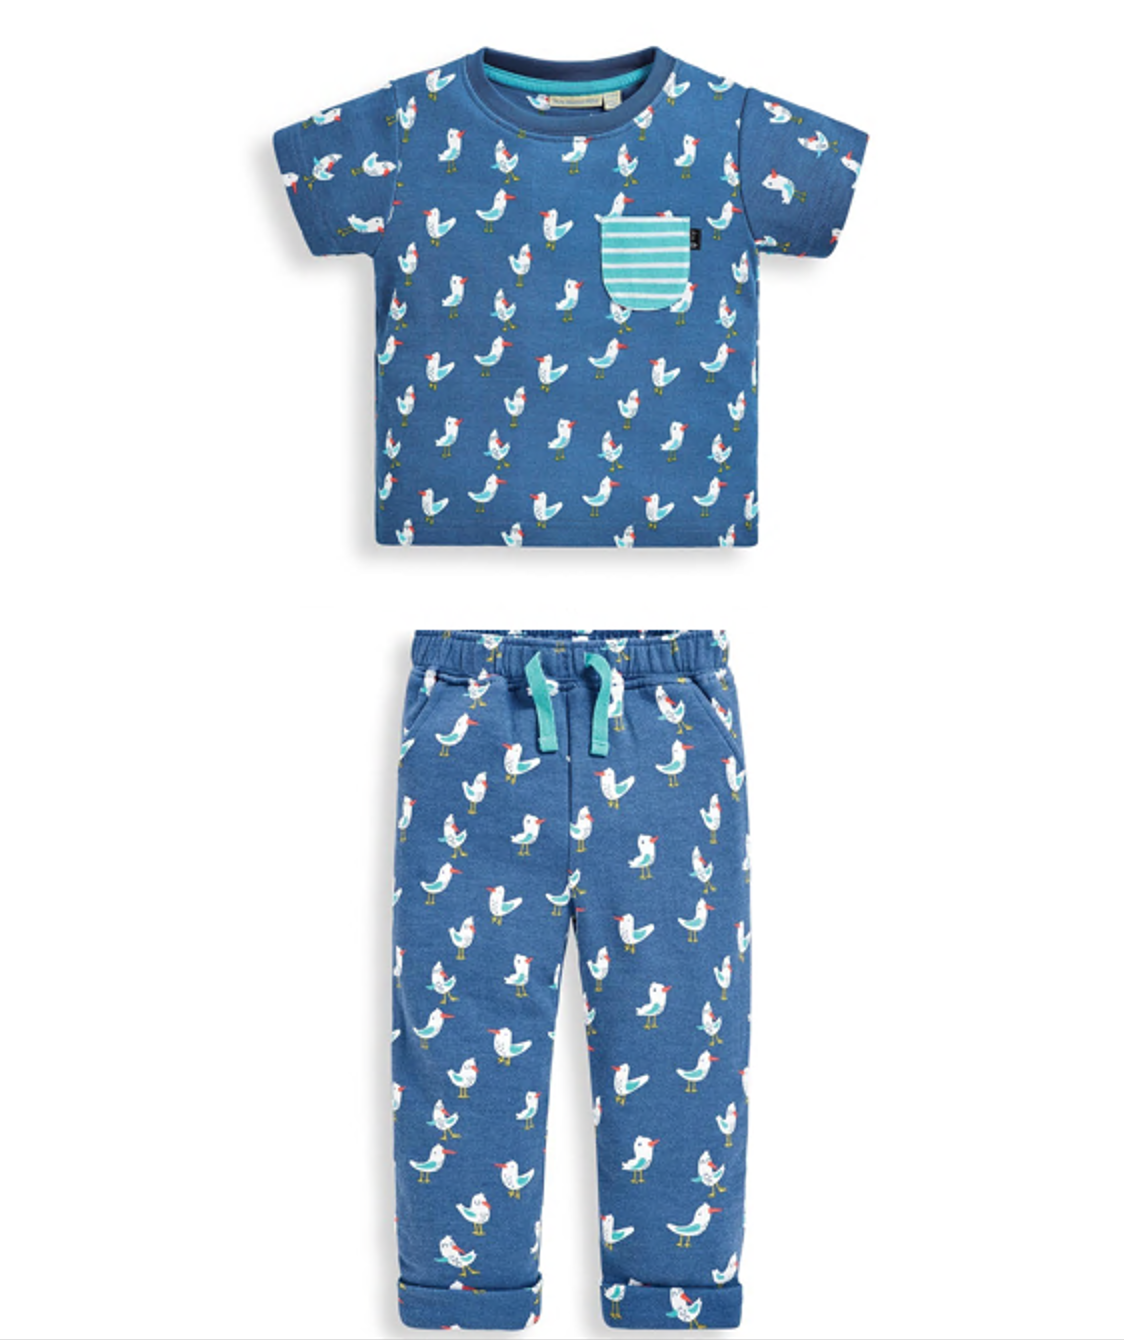 Kids' Seagulls Outfit